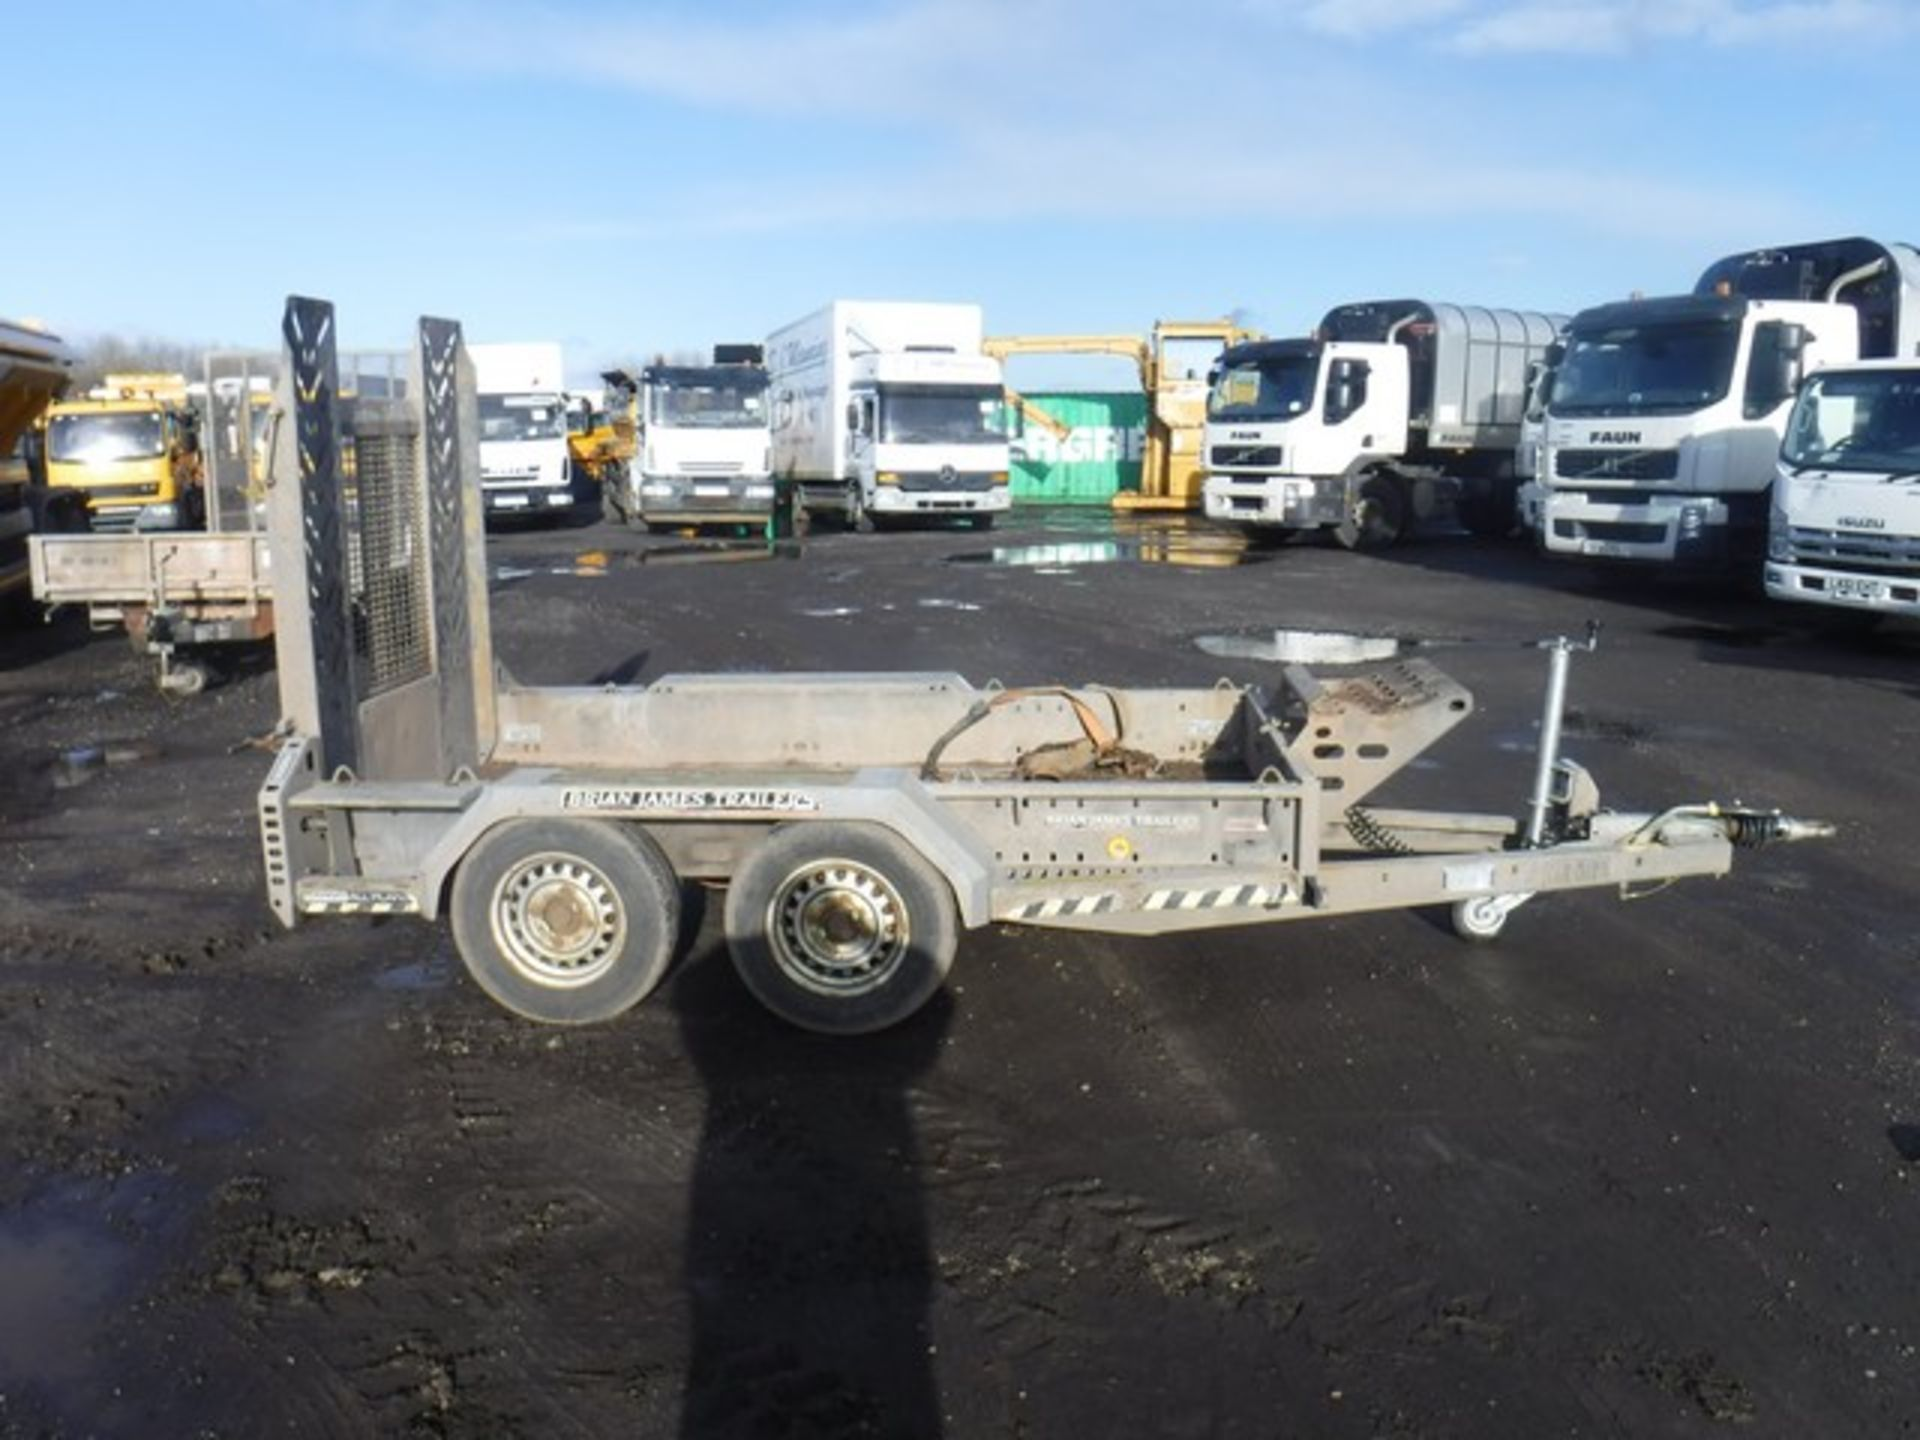 Lot 1408 - BRAIN JAMES SMALL PLANT TRAILER 9FTx5FT ASSET NO - 758-5108 SN - SJB888GBPDD000812